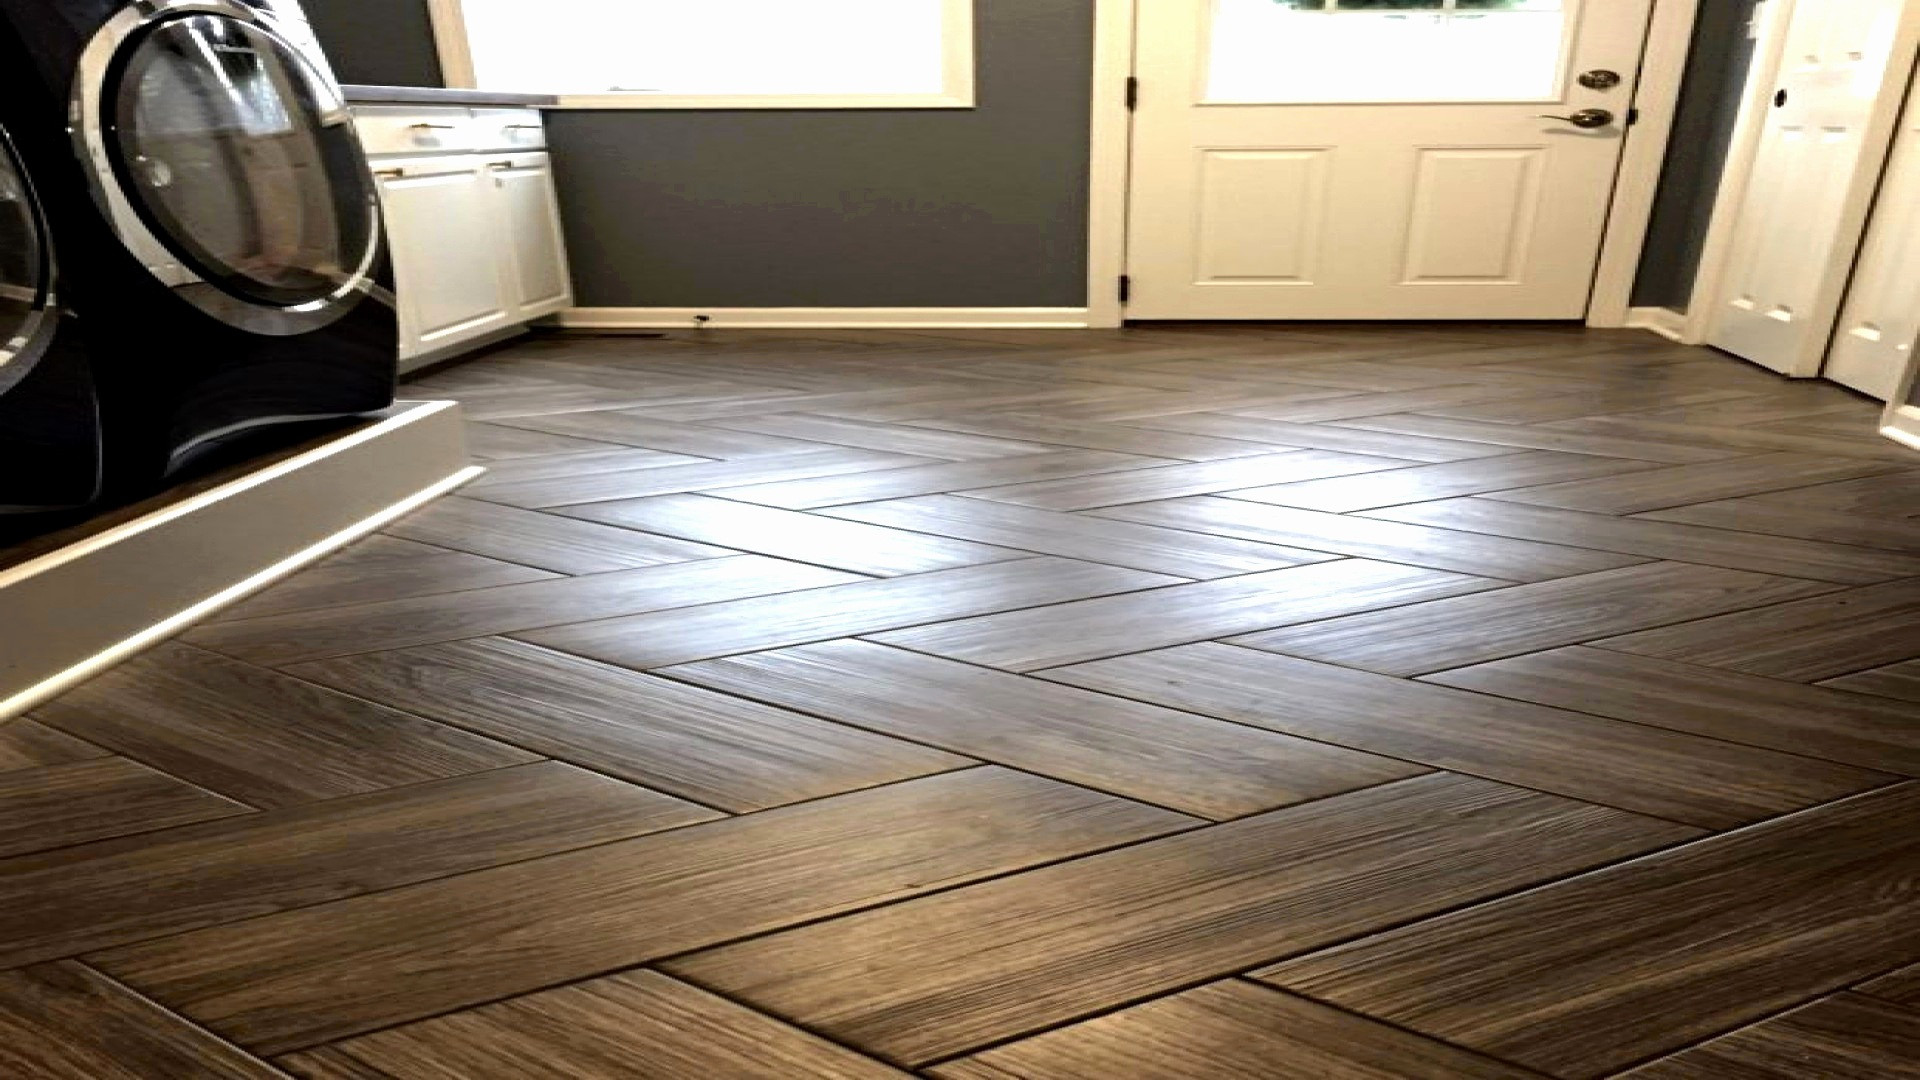 14 Trendy Vinyl Plank Flooring Vs Hardwood 2021 free download vinyl plank flooring vs hardwood of flooring design ideas find ideas and inspiration for flooring within wpc vinyl flooring lovely 52 awesome wood plank flooring 52 s image